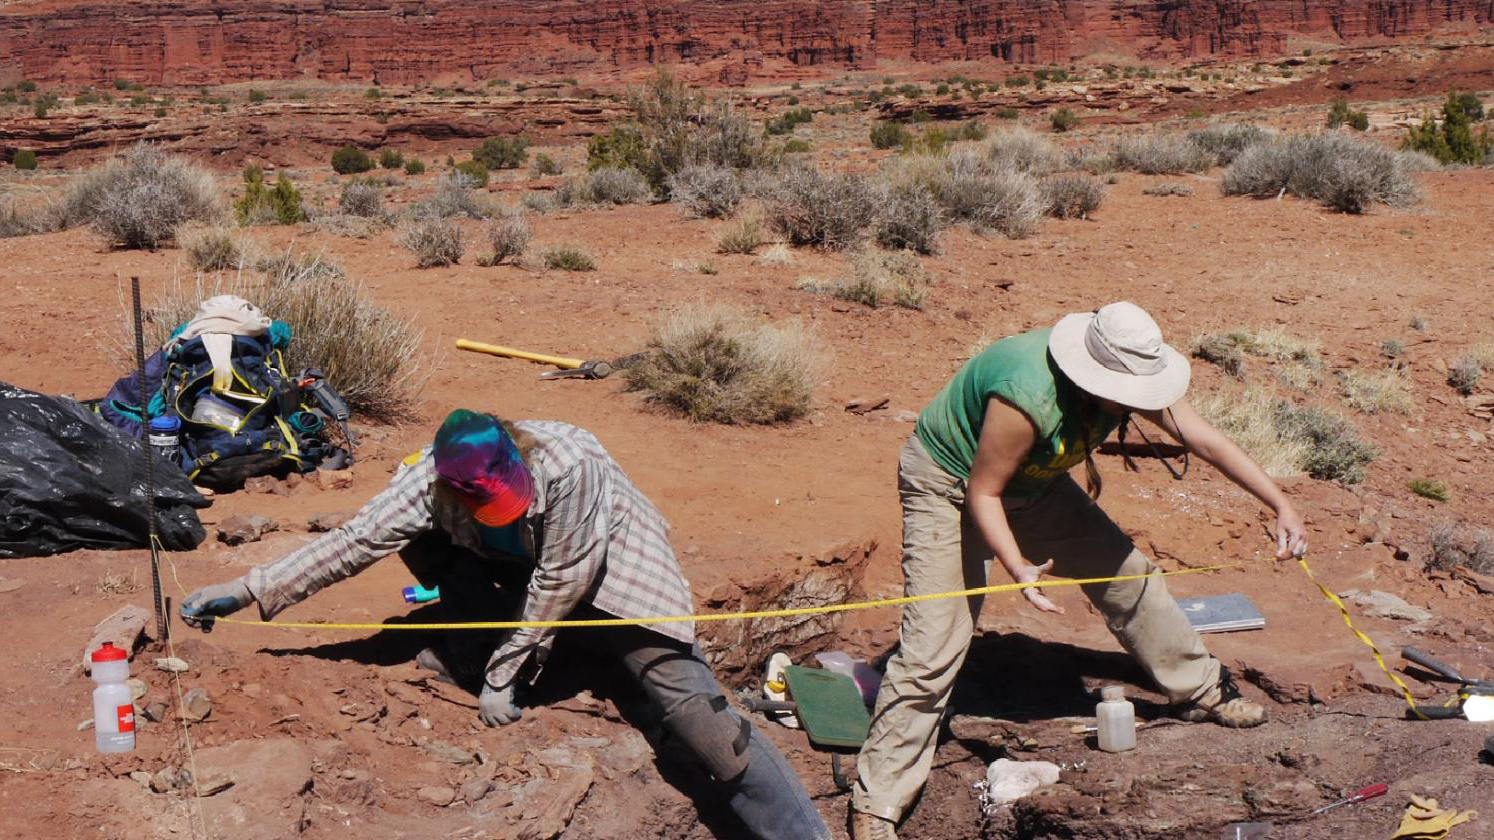 Paleontologists digging in the desert.